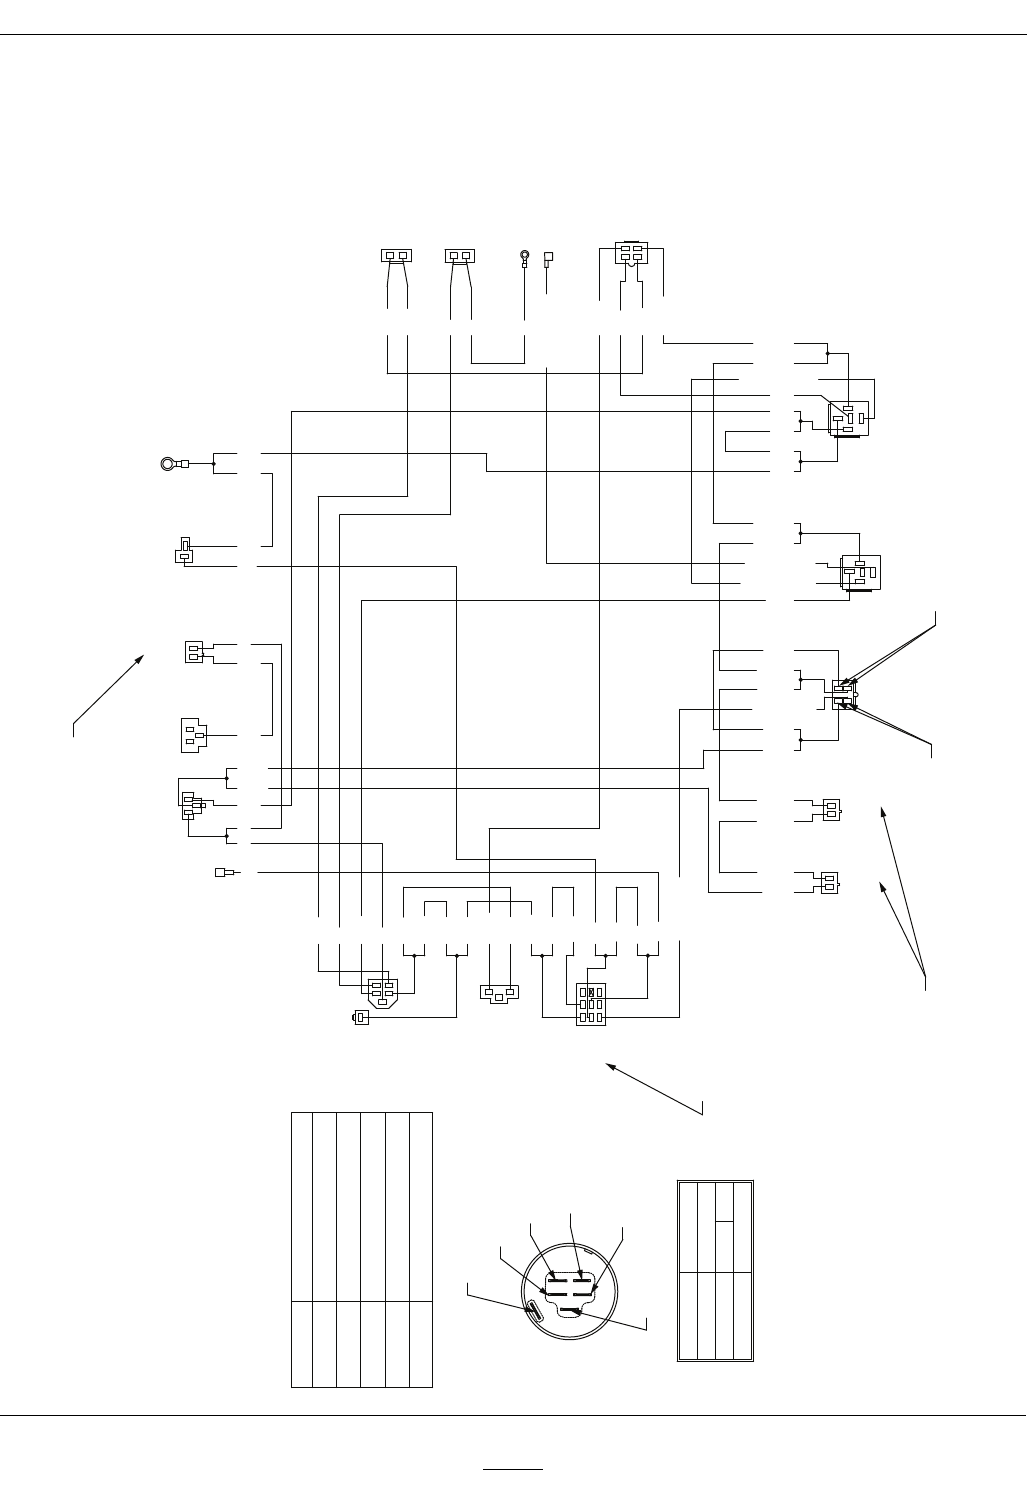 a540b2ea ebbf 4a49 b938 77313dc69ced bg2b lz27kc604 wiring diagram exmark lz27kc604 parts diagram \u2022 wiring  at readyjetset.co